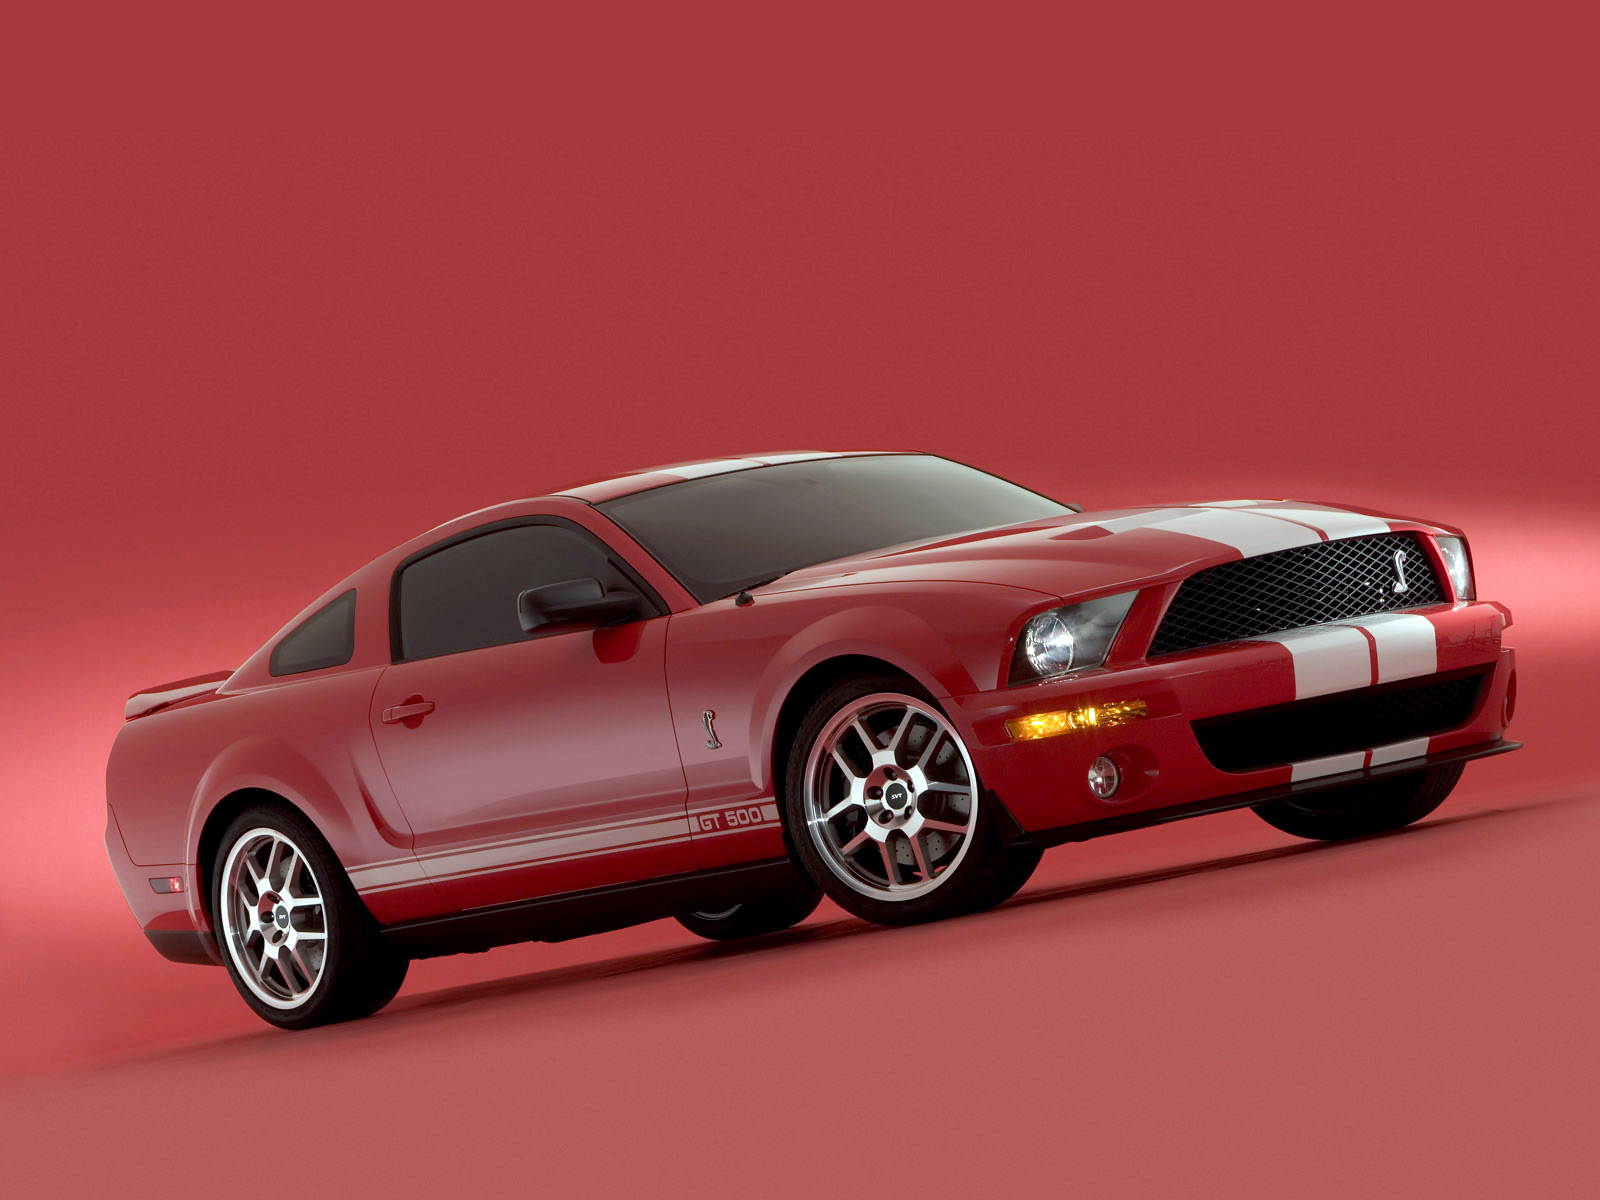 picture of Ford Mustang, 2005, Shelby Cobra GT500